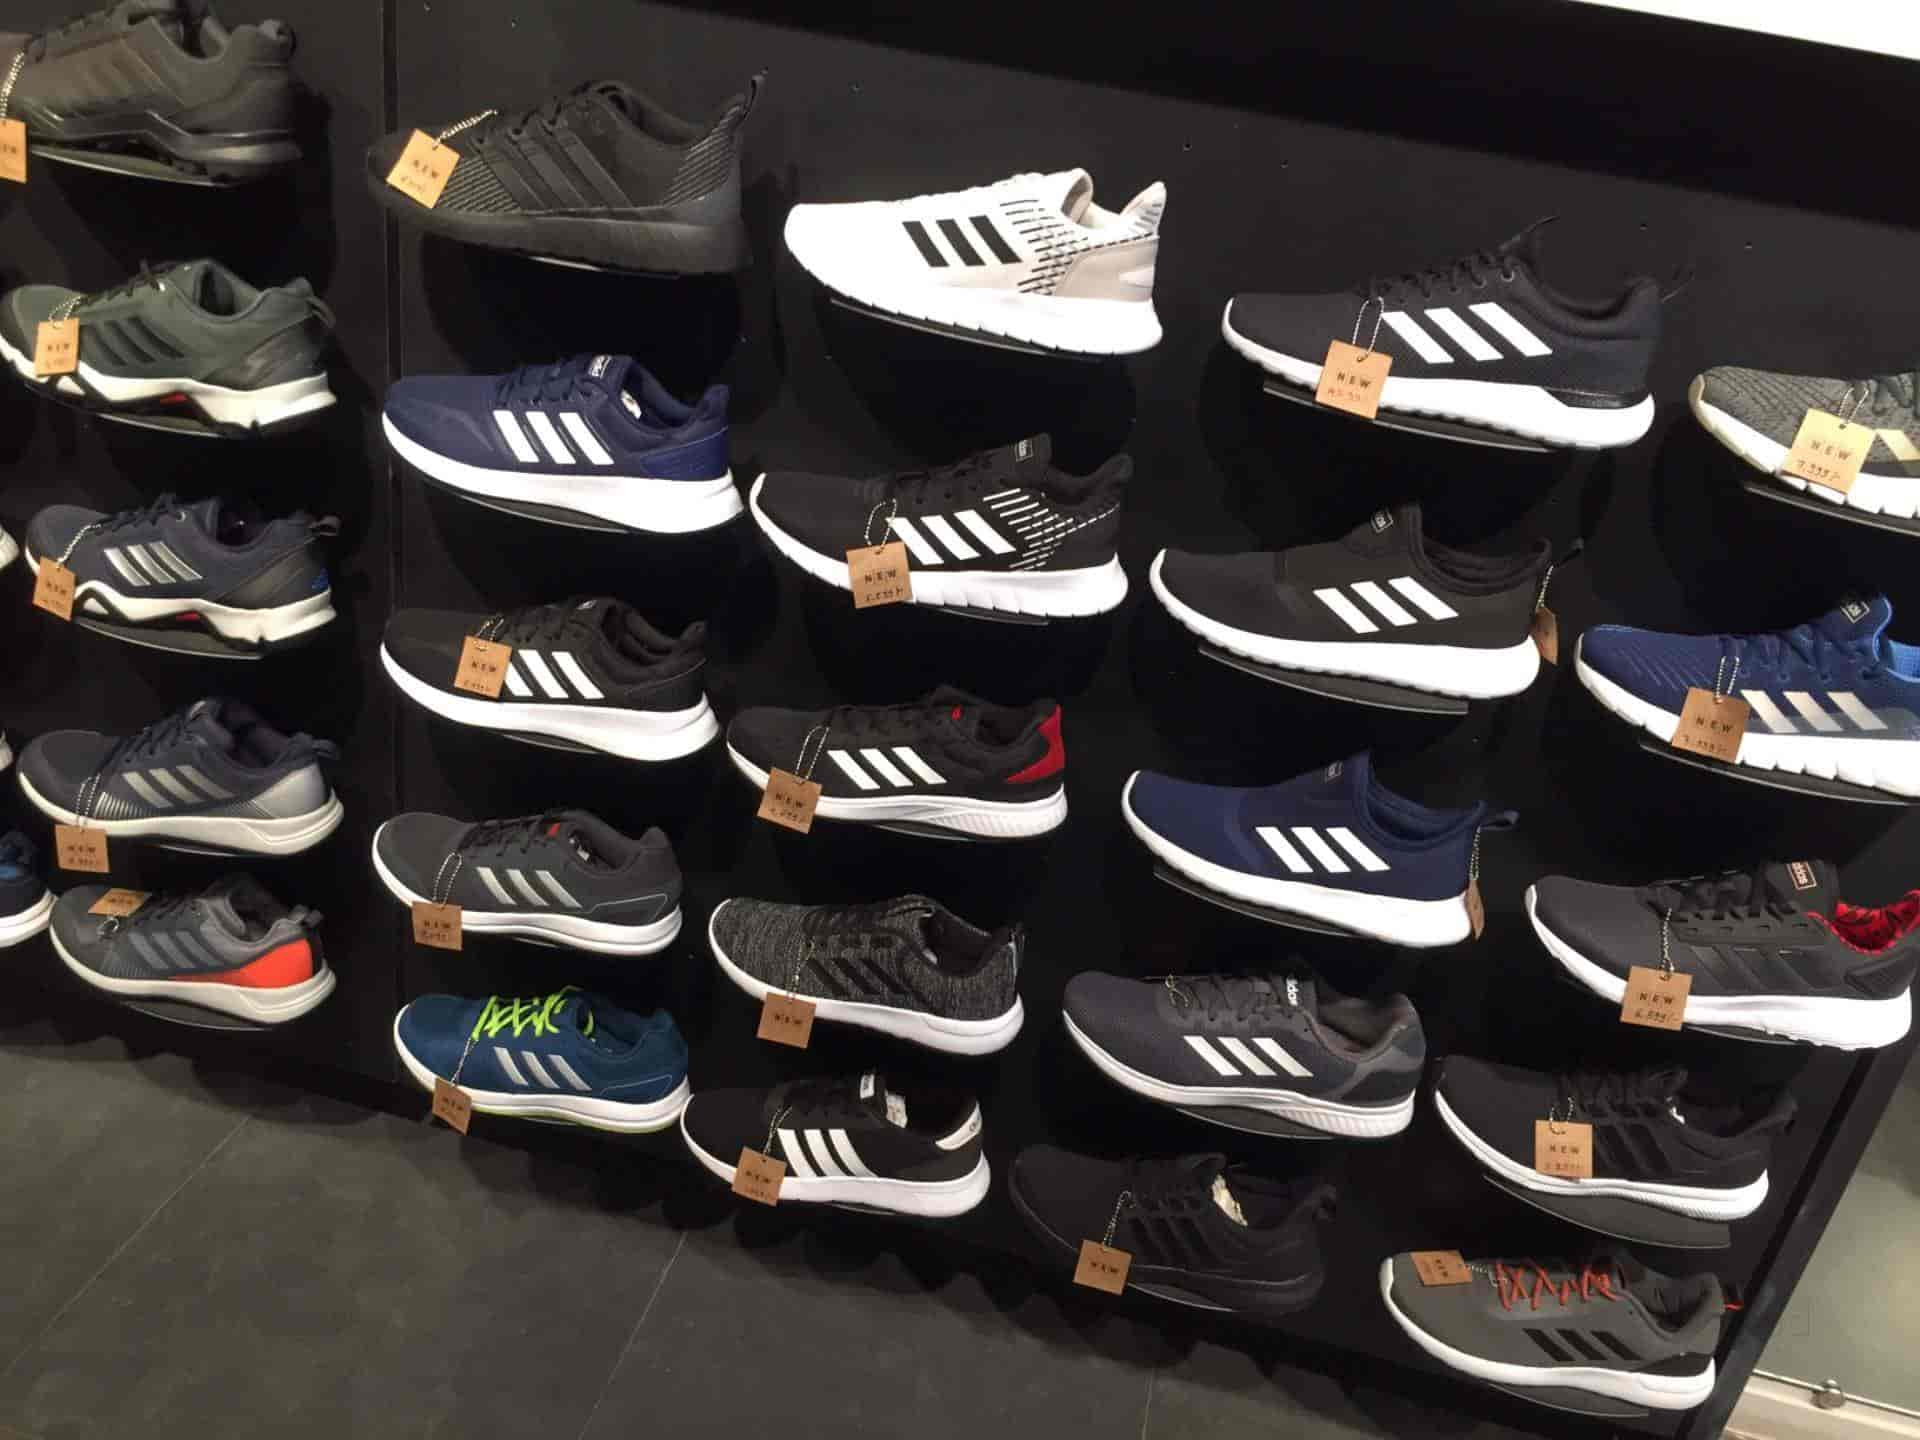 0e4f9494c966 ... Adidas Store (Factory Outlet) Photos